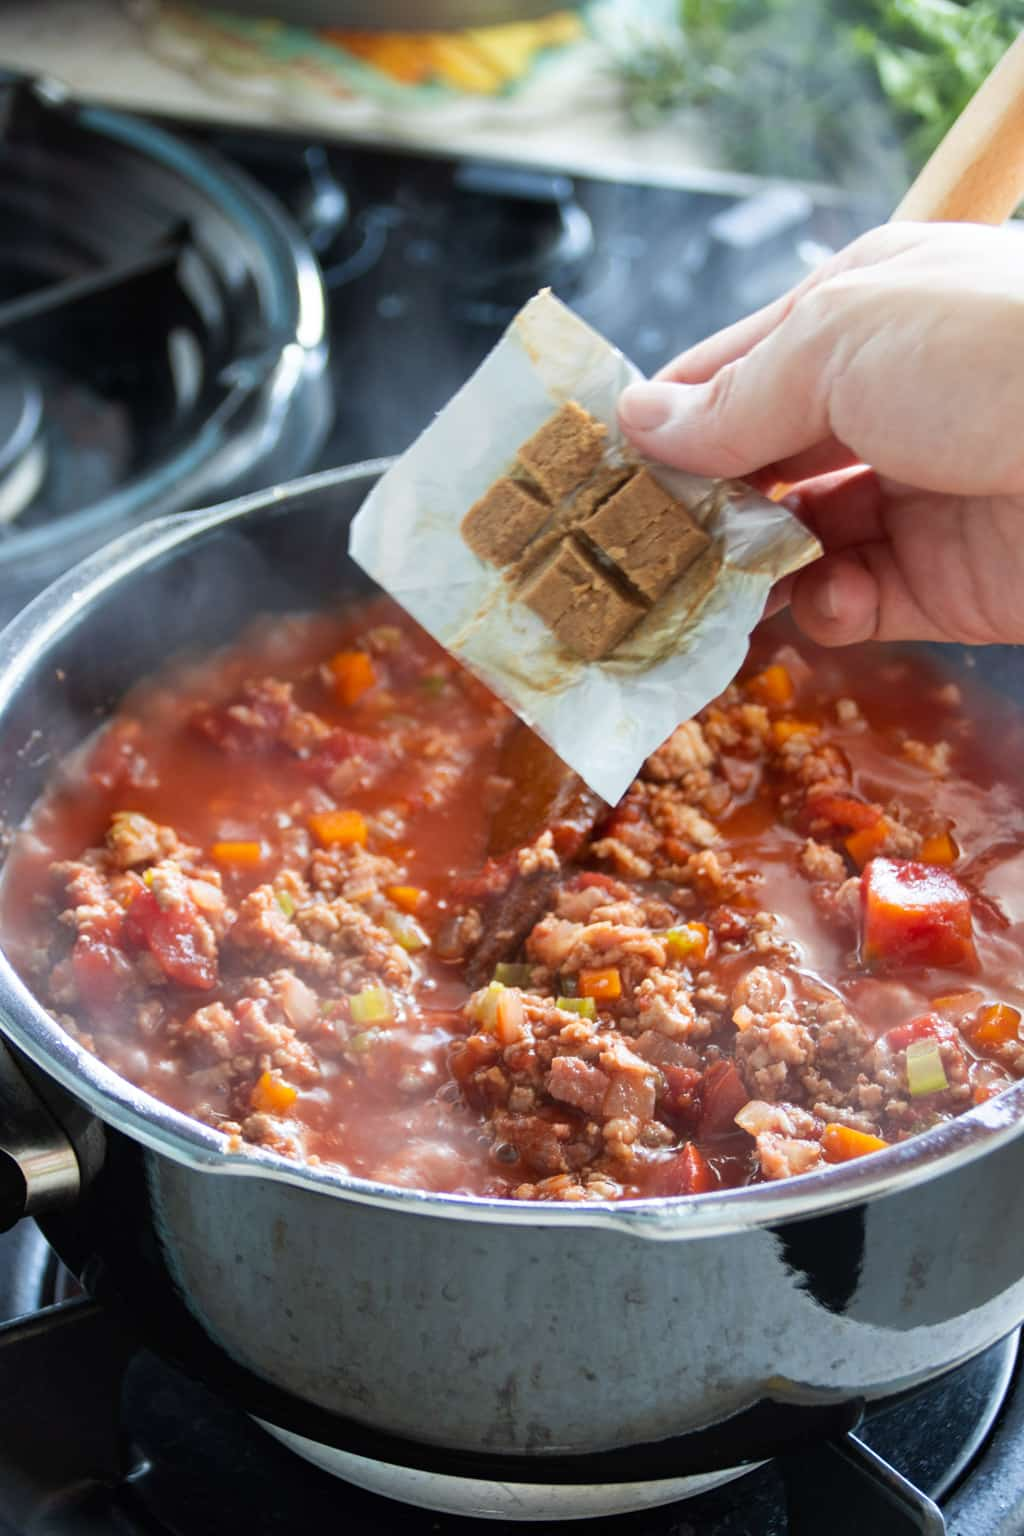 Adding beef stock cubes to bolognese sauce